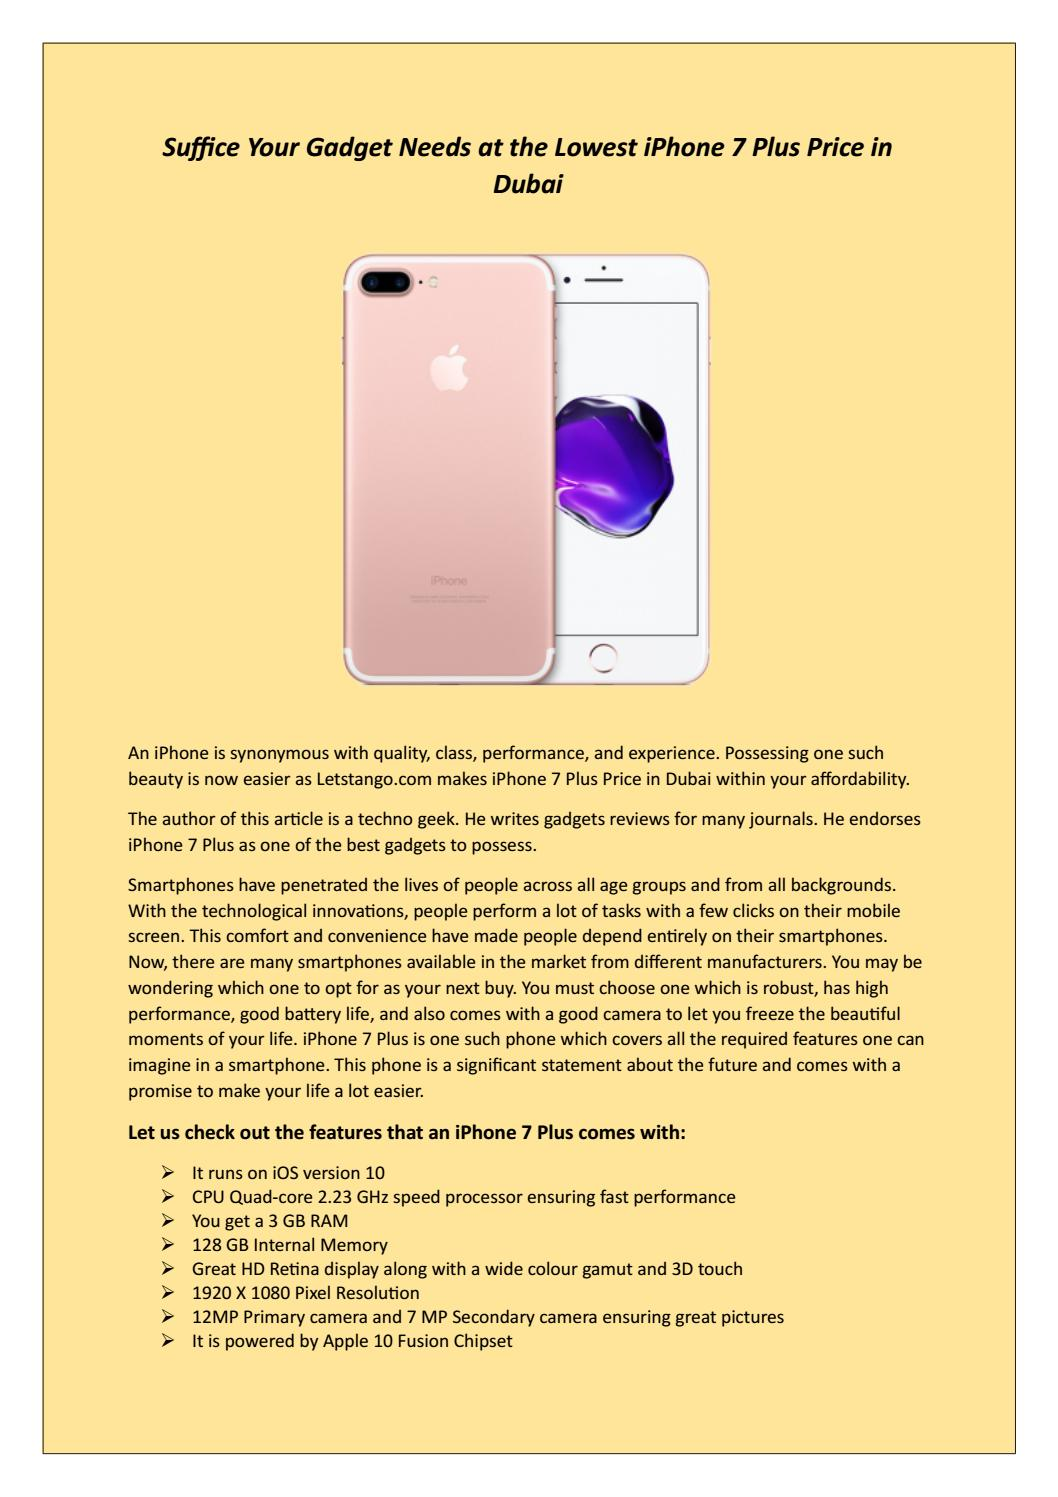 Suffice your gadget needs at the lowest iphone 7 plus price in dubai